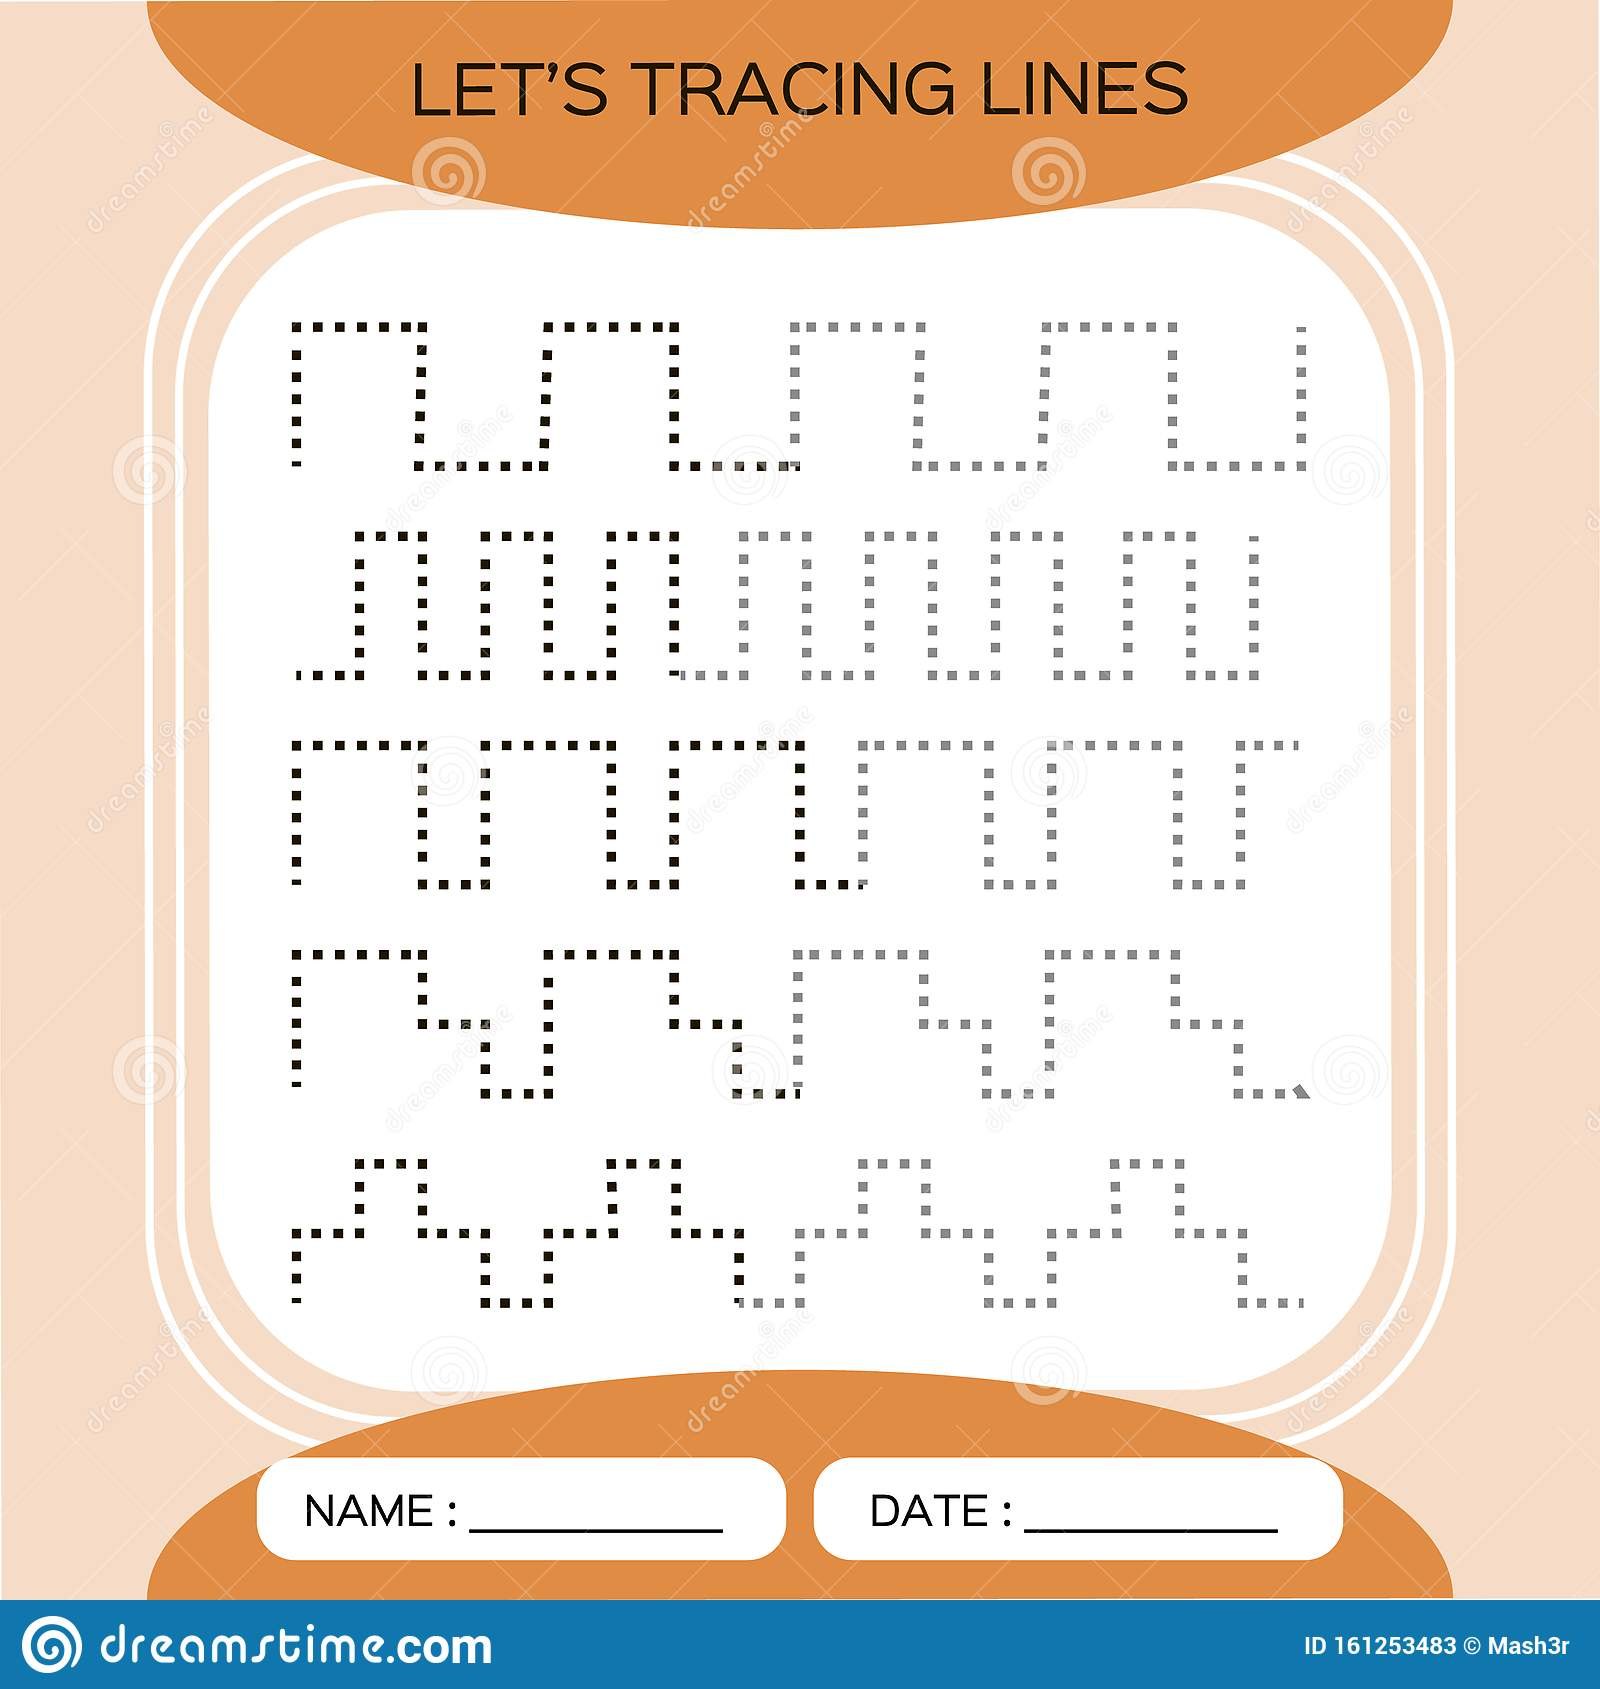 Tracing Lines Activity For Early Years Preschool